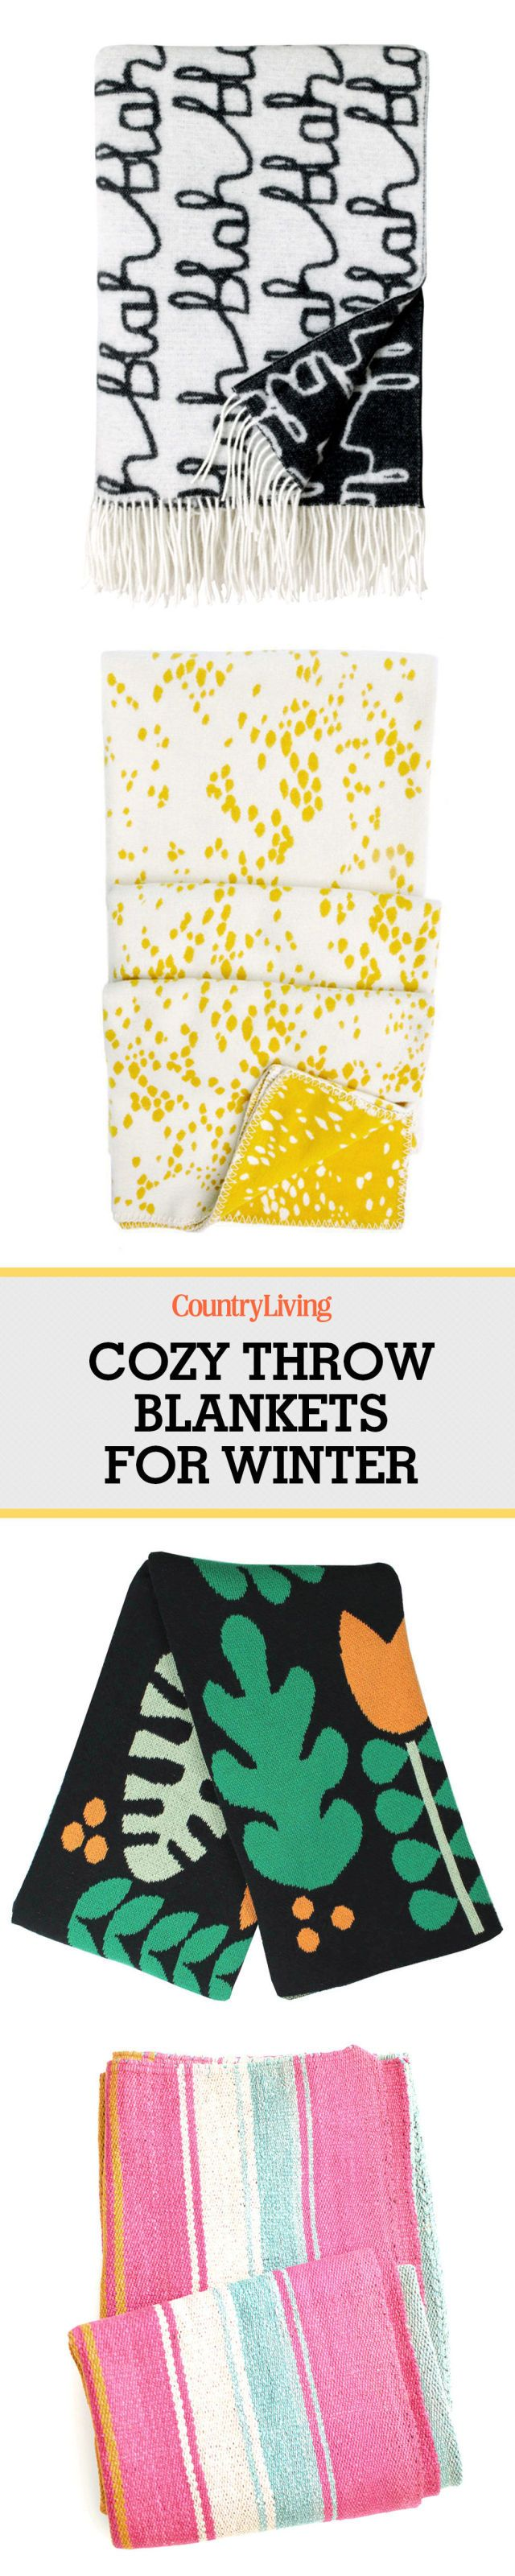 These cozy throw blankets will help you survive the end of winter.